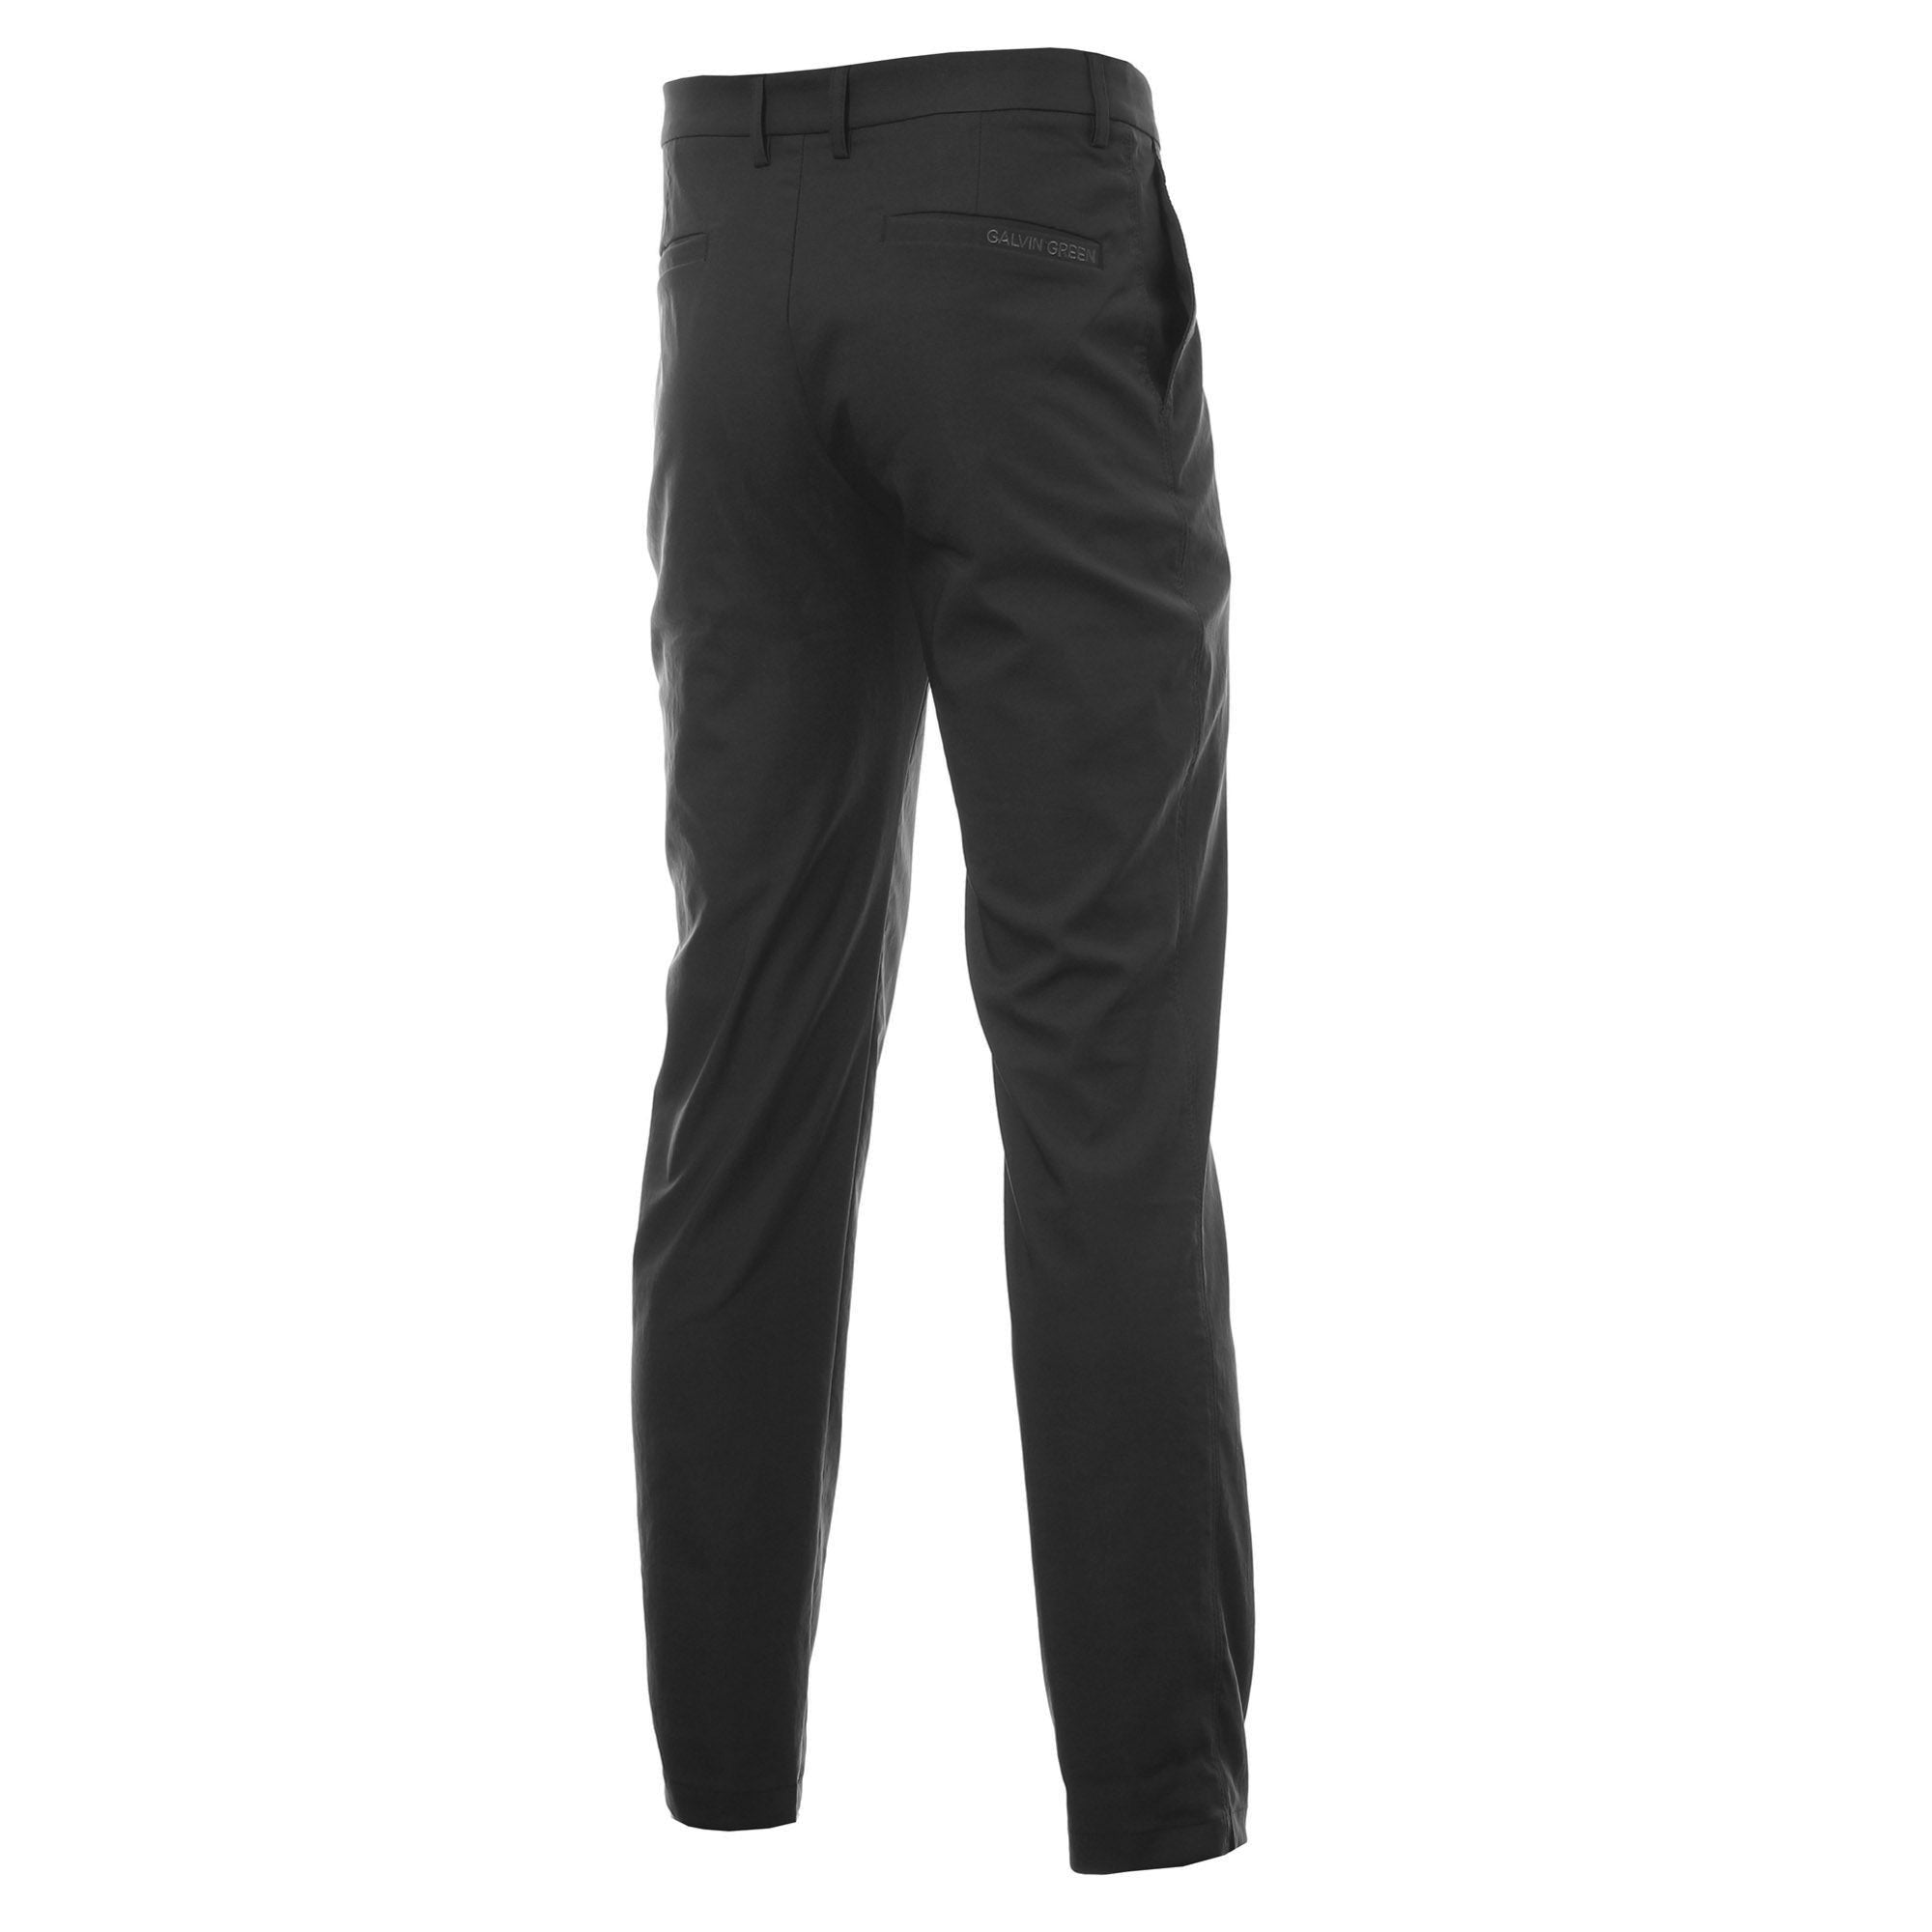 Galvin Green Noah Ventil8+ Golf Trousers